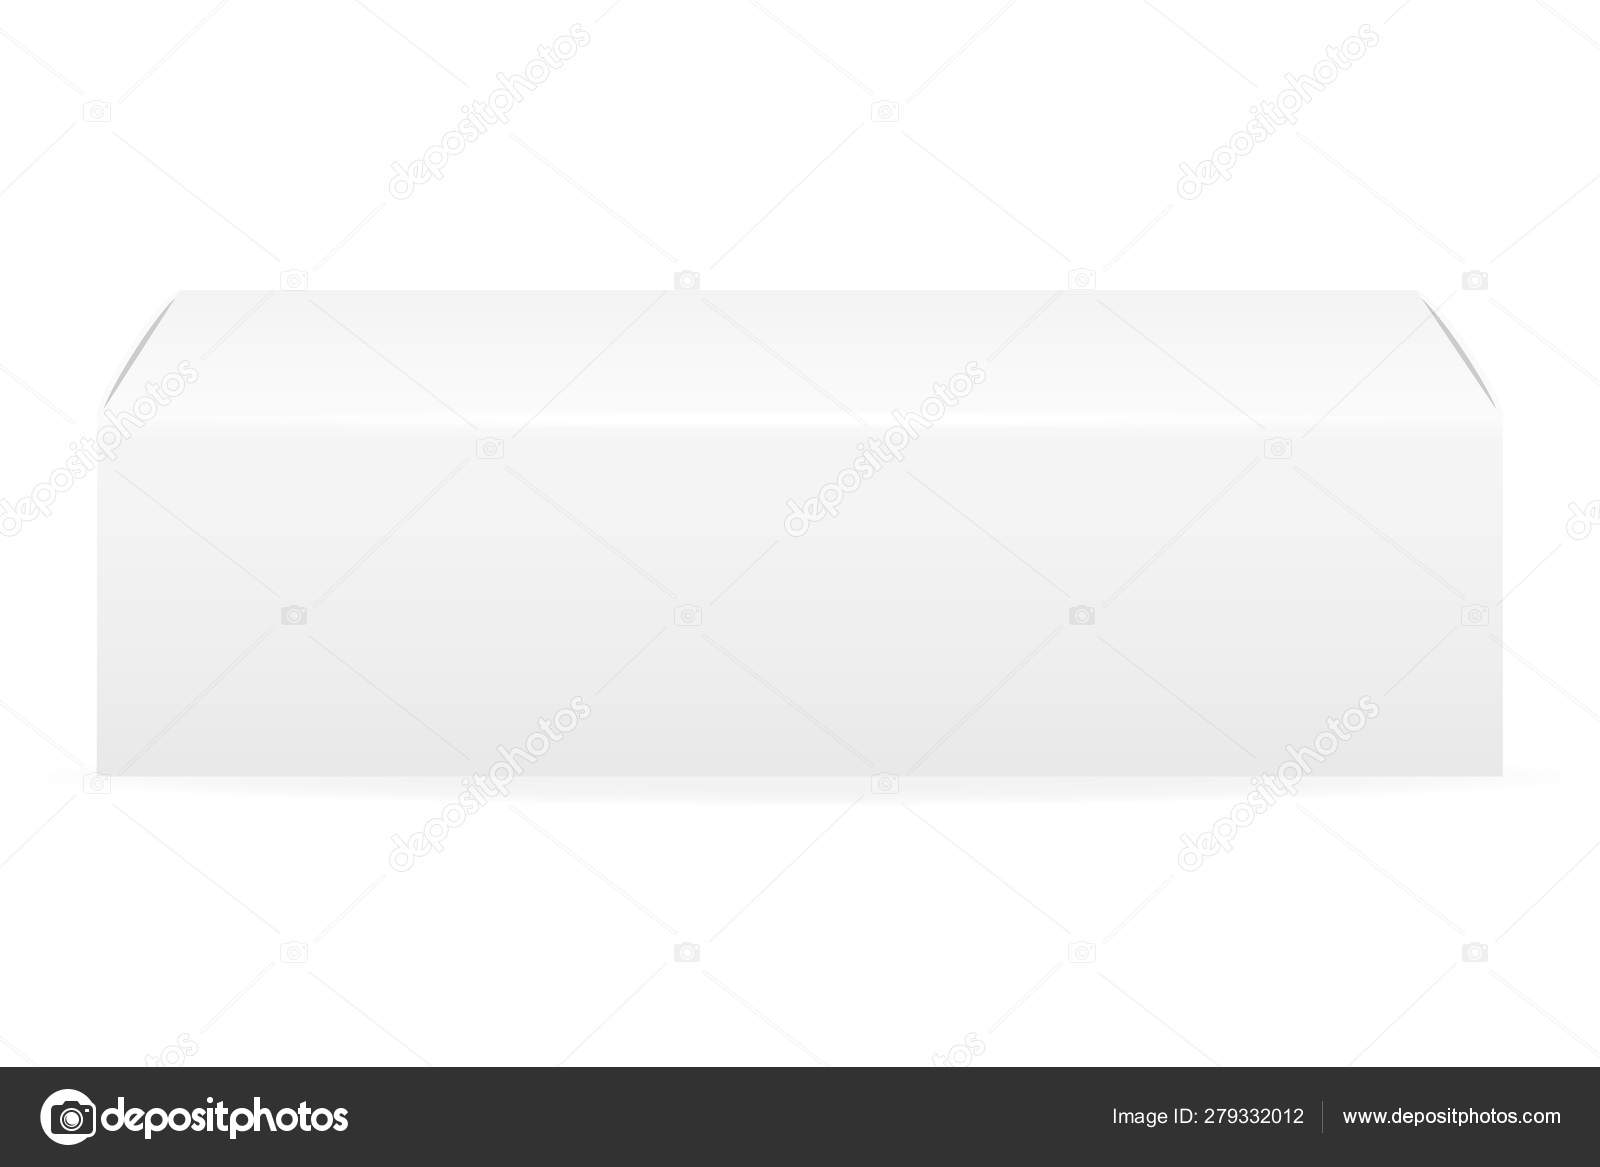 Box Packaging Of Toothpaste Empty Template For Design Stock Vect Stock Vector C Sanskript81 Yahoo Com 279332012